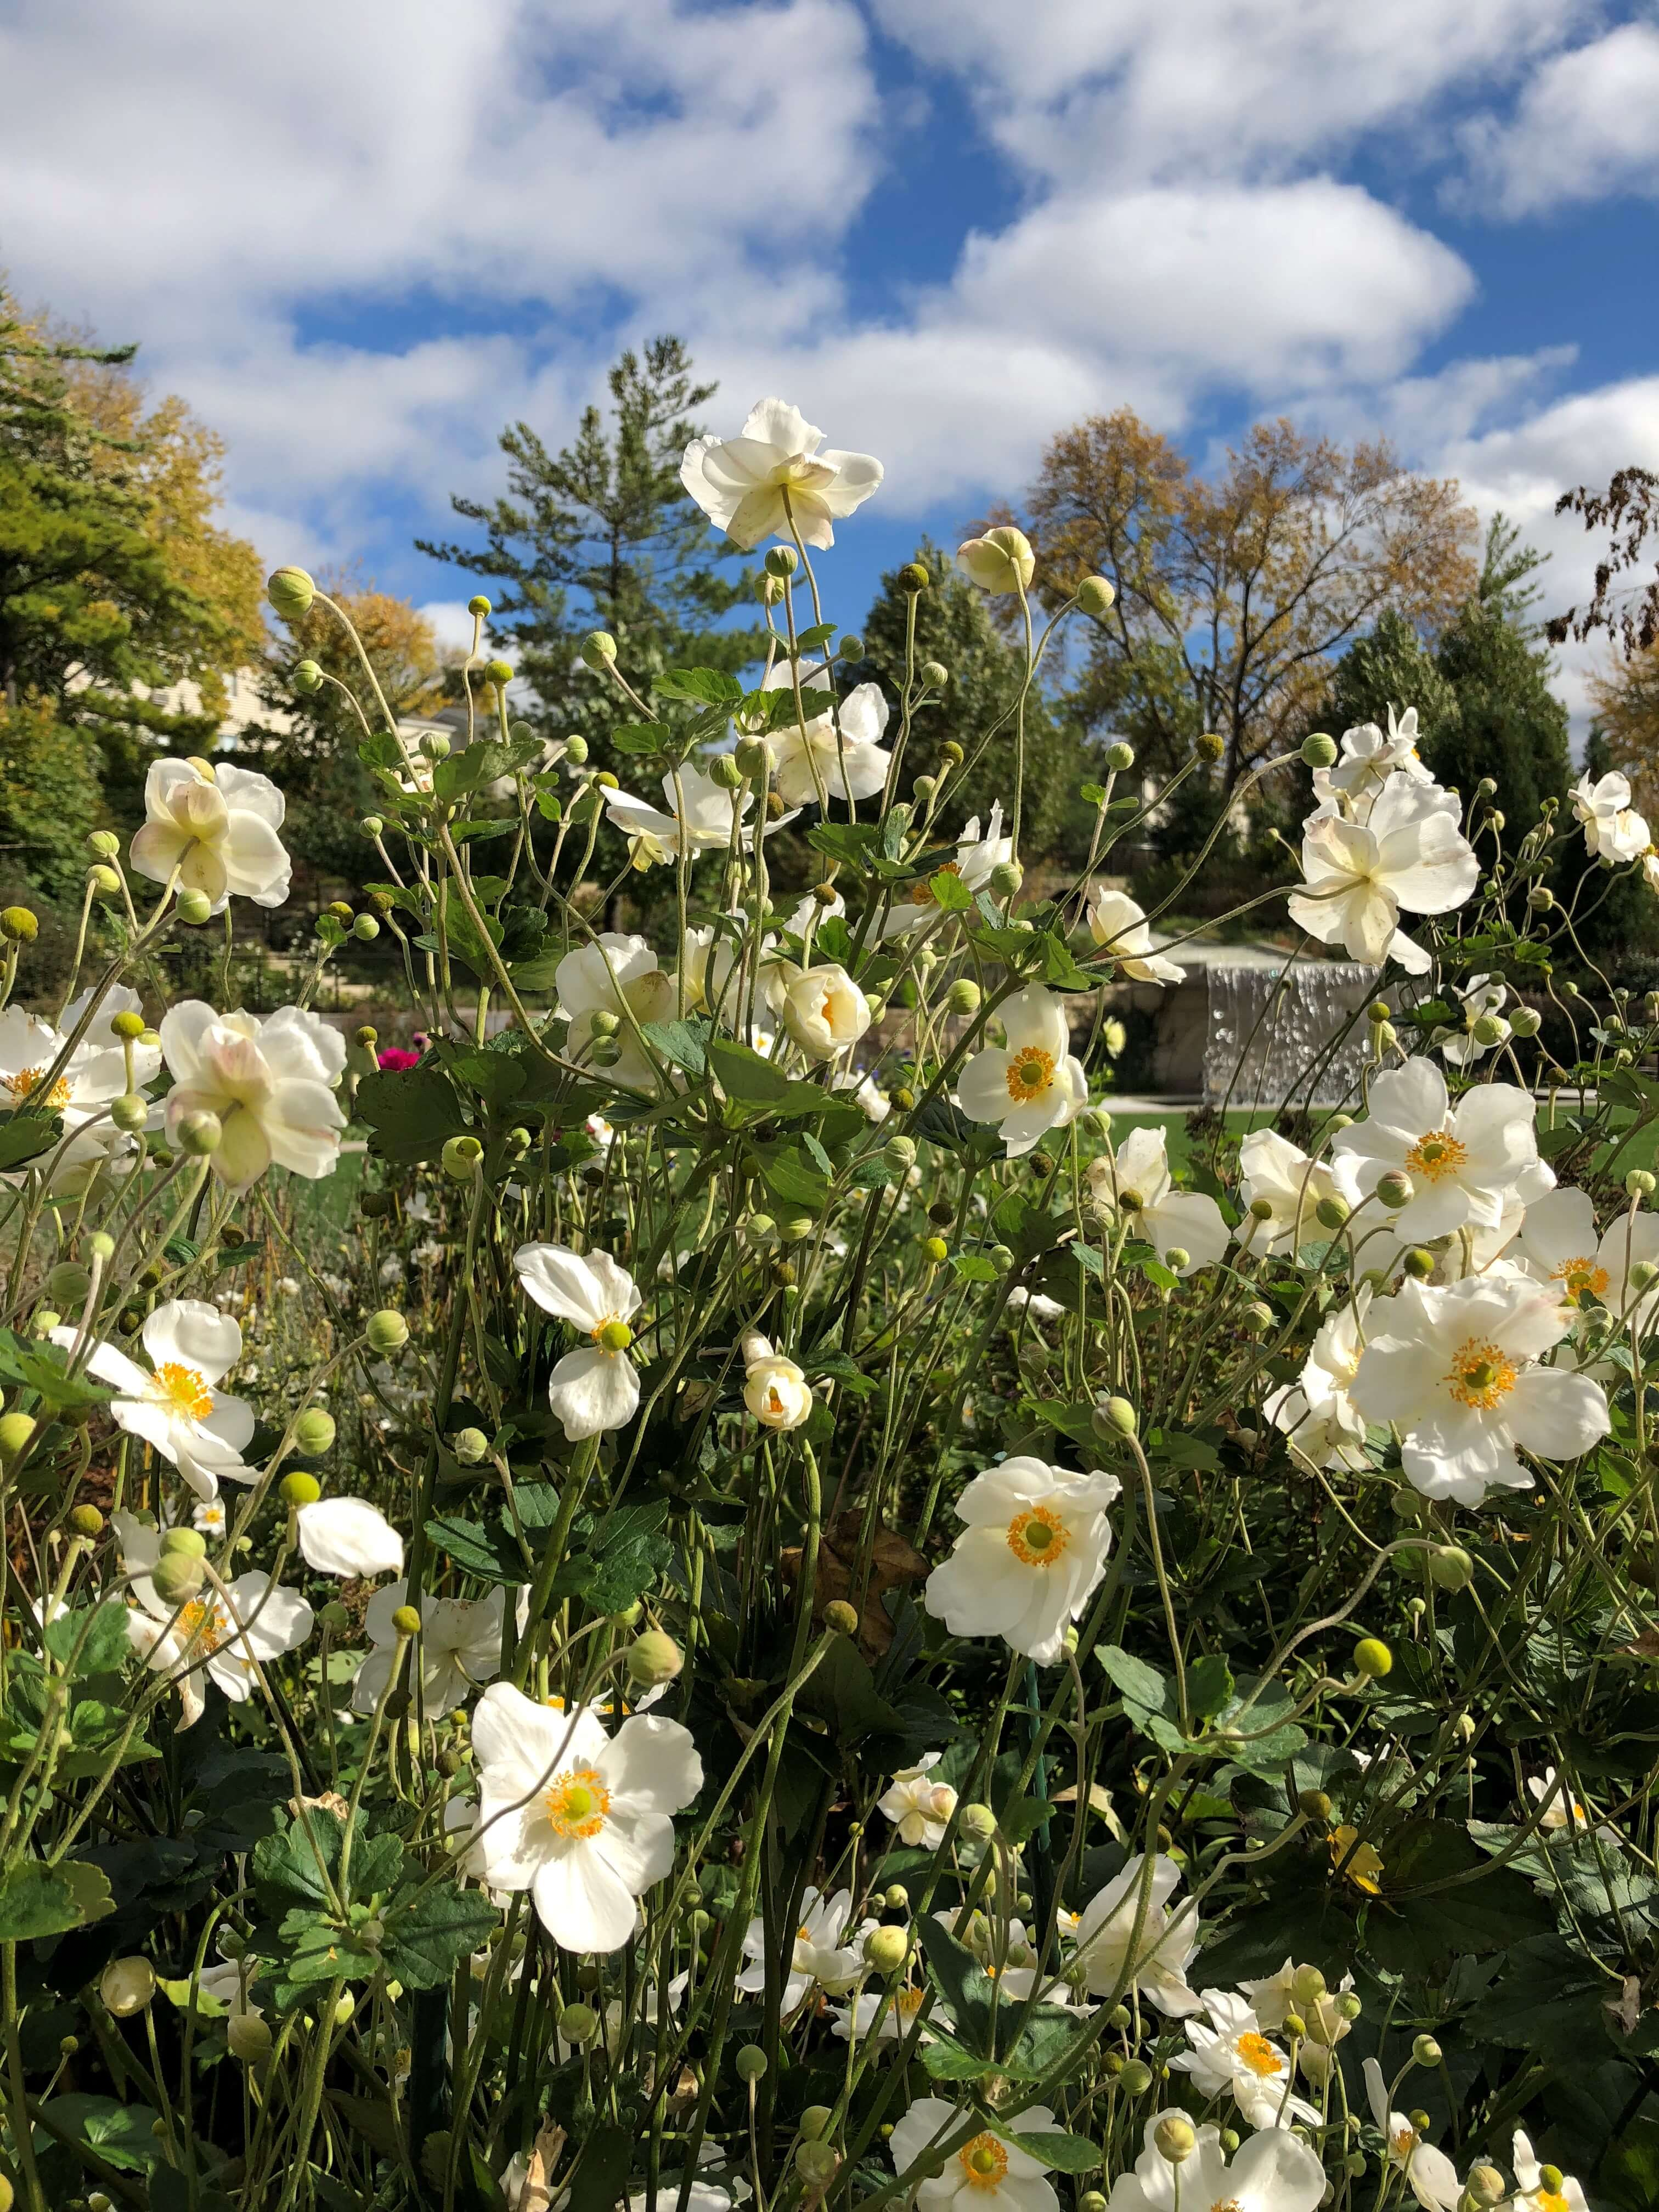 Anemone 'Honorine Jobert' is striking against a blue October sky in the Koehn Garden. Photo by Leslie Hunter, Oct. 11, 2018